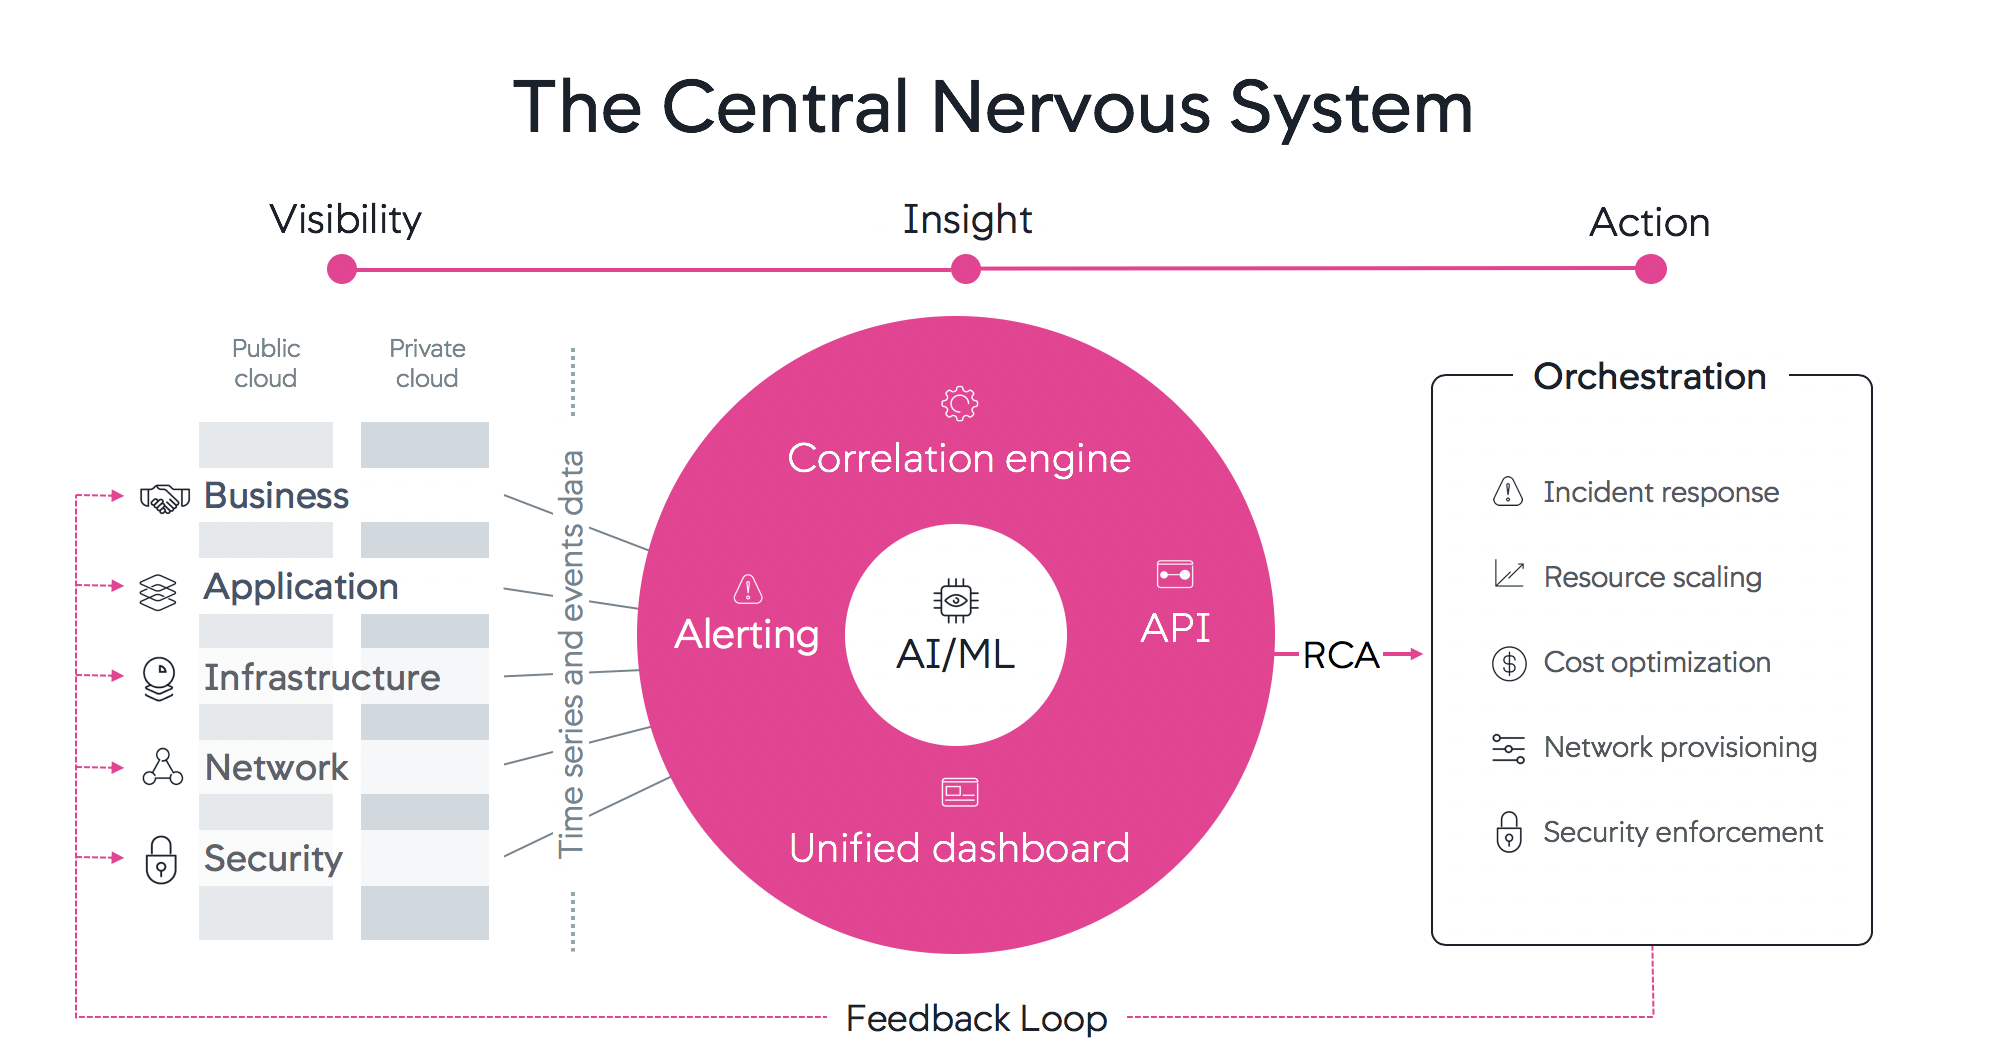 AppD Central Nervous System - AppDynamics has expanded our monitoring coverage to consider the underlying components.